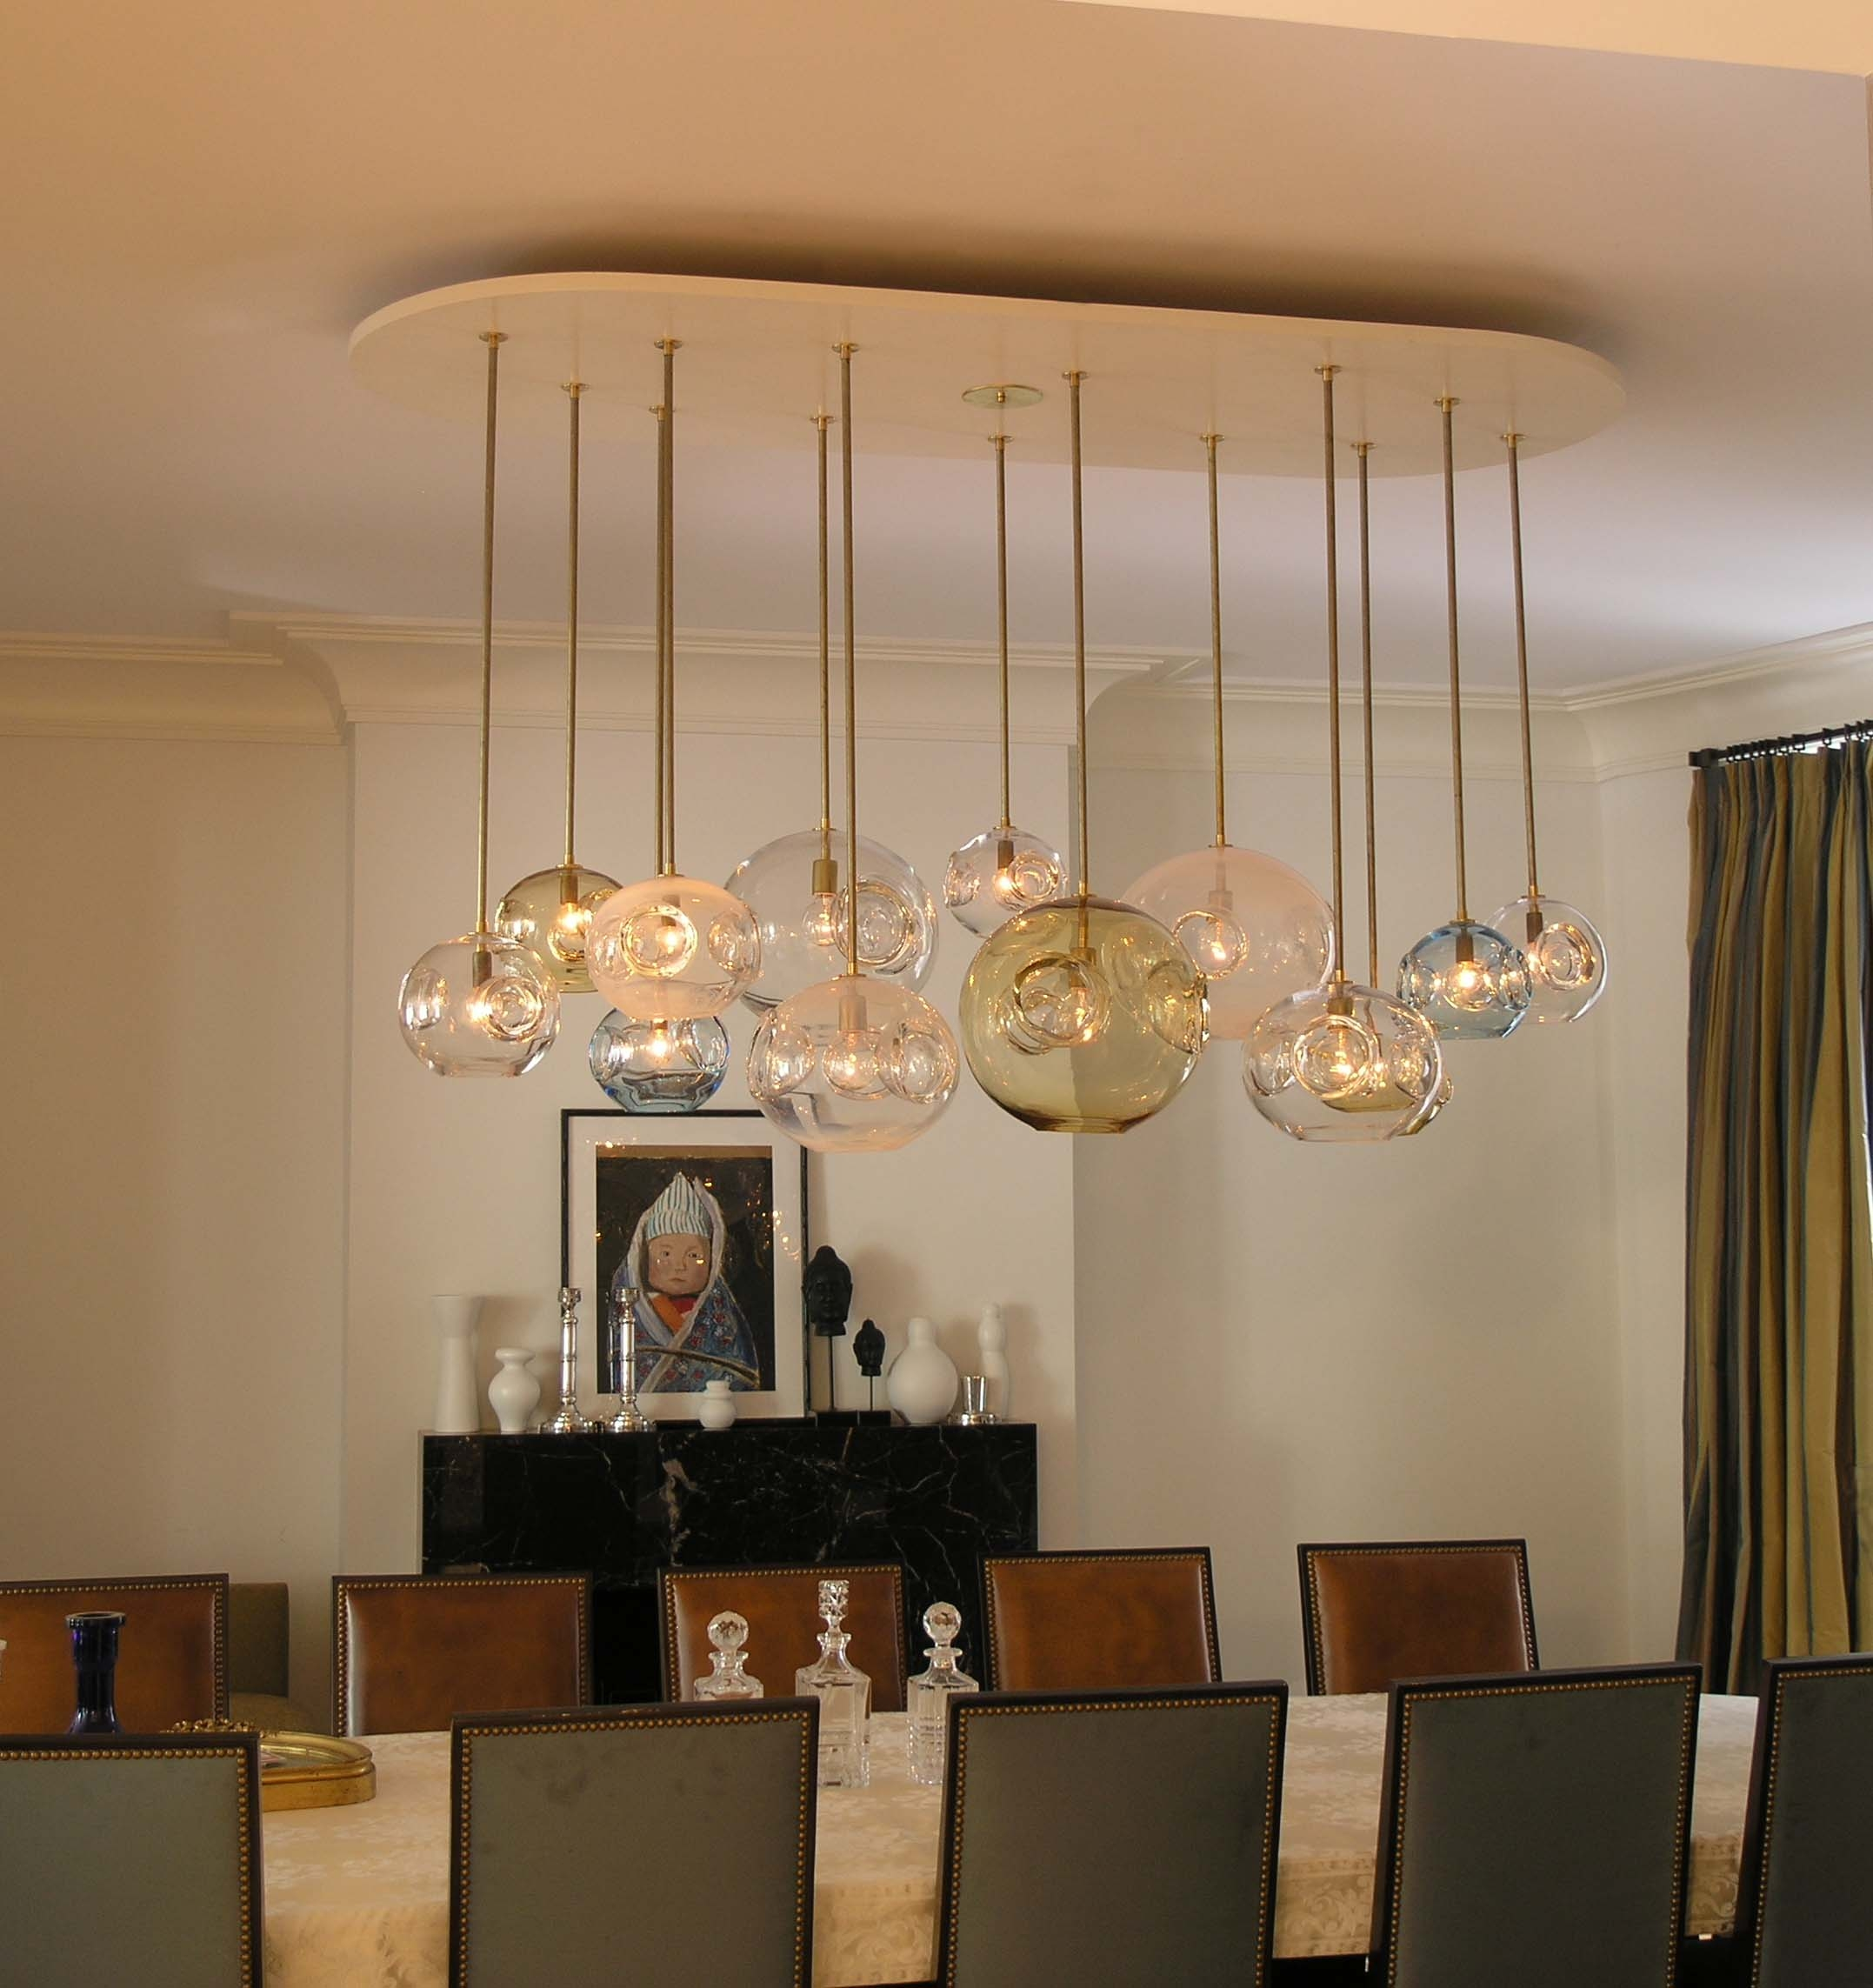 12 Collection of Long Hanging Chandeliers